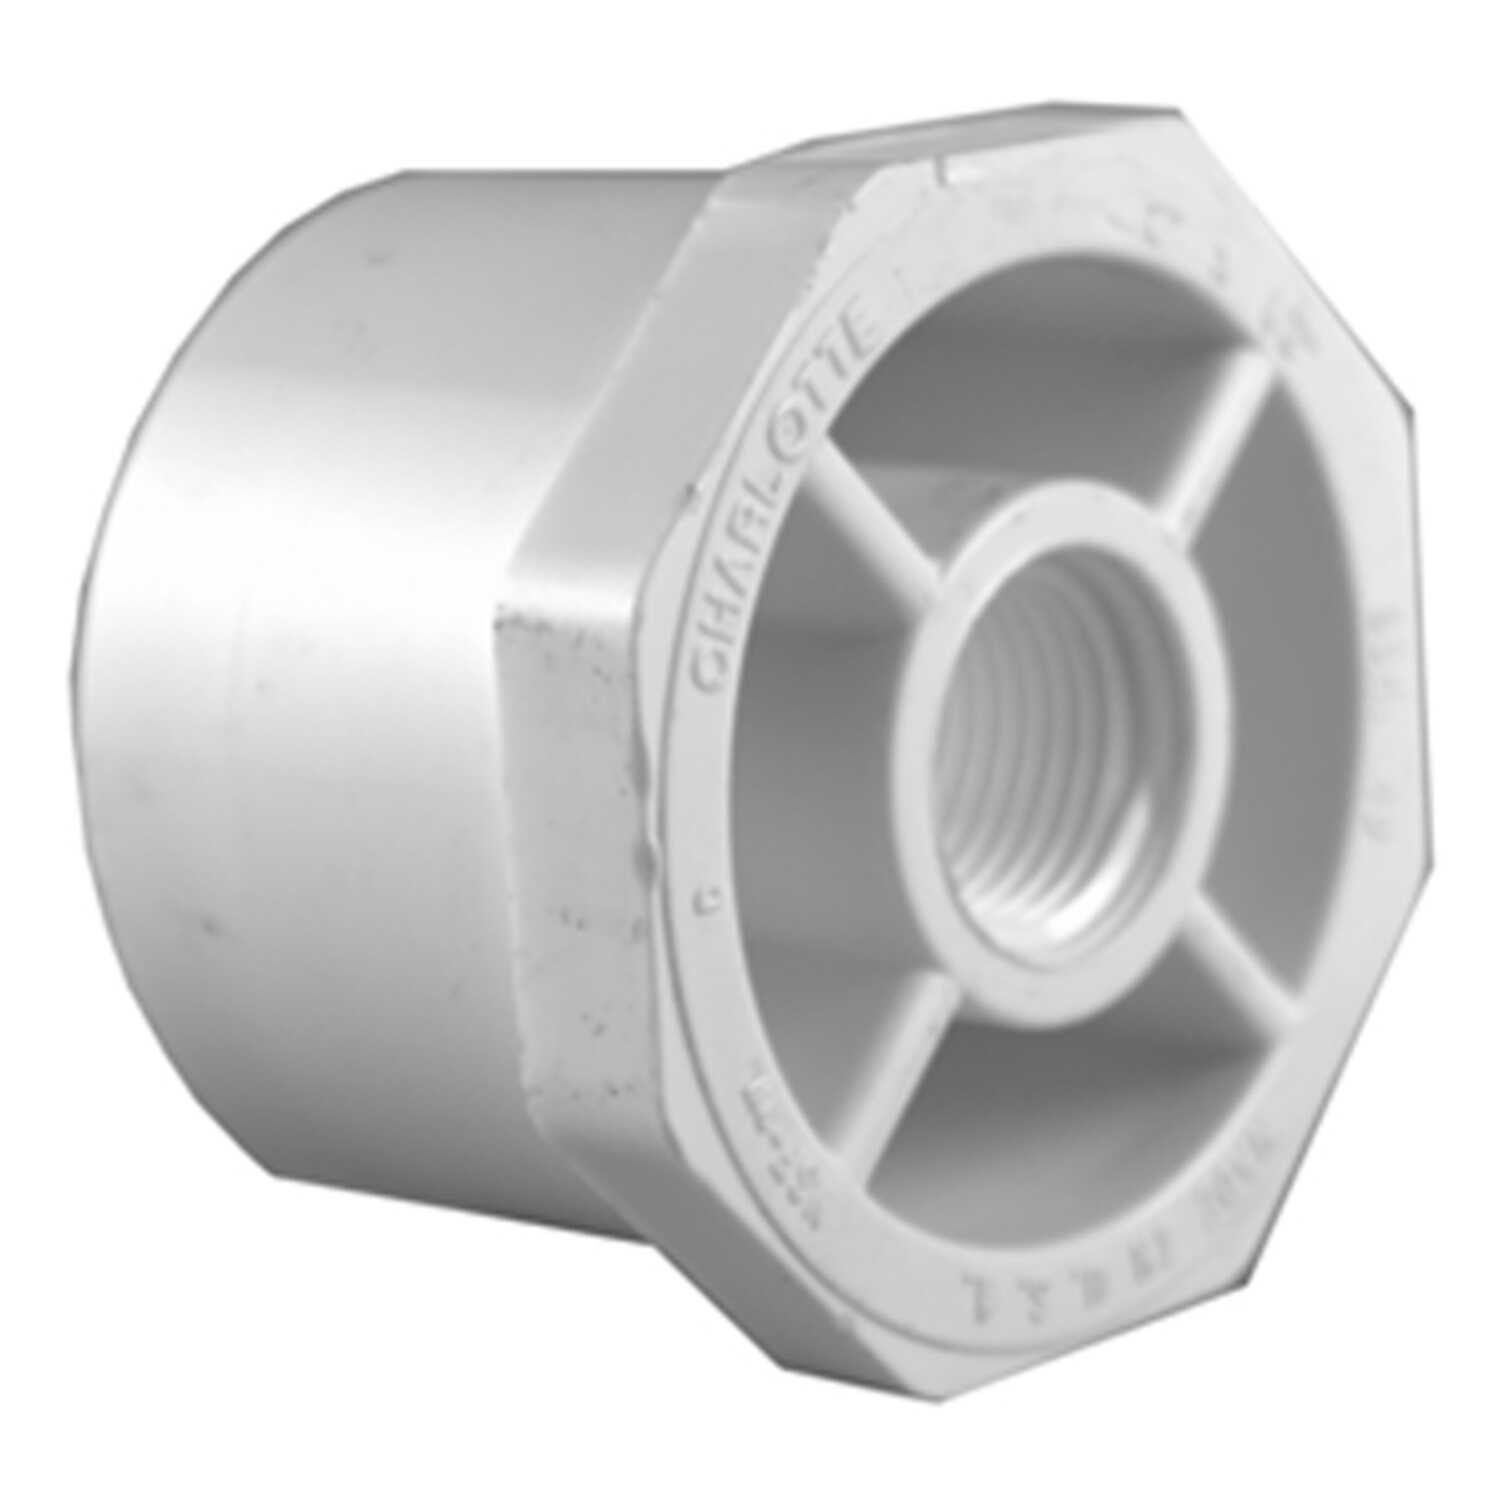 Charlotte Pipe  Schedule 40  2-1/2 in. Spigot   x 2 in. Dia. FPT  PVC  Reducing Bushing